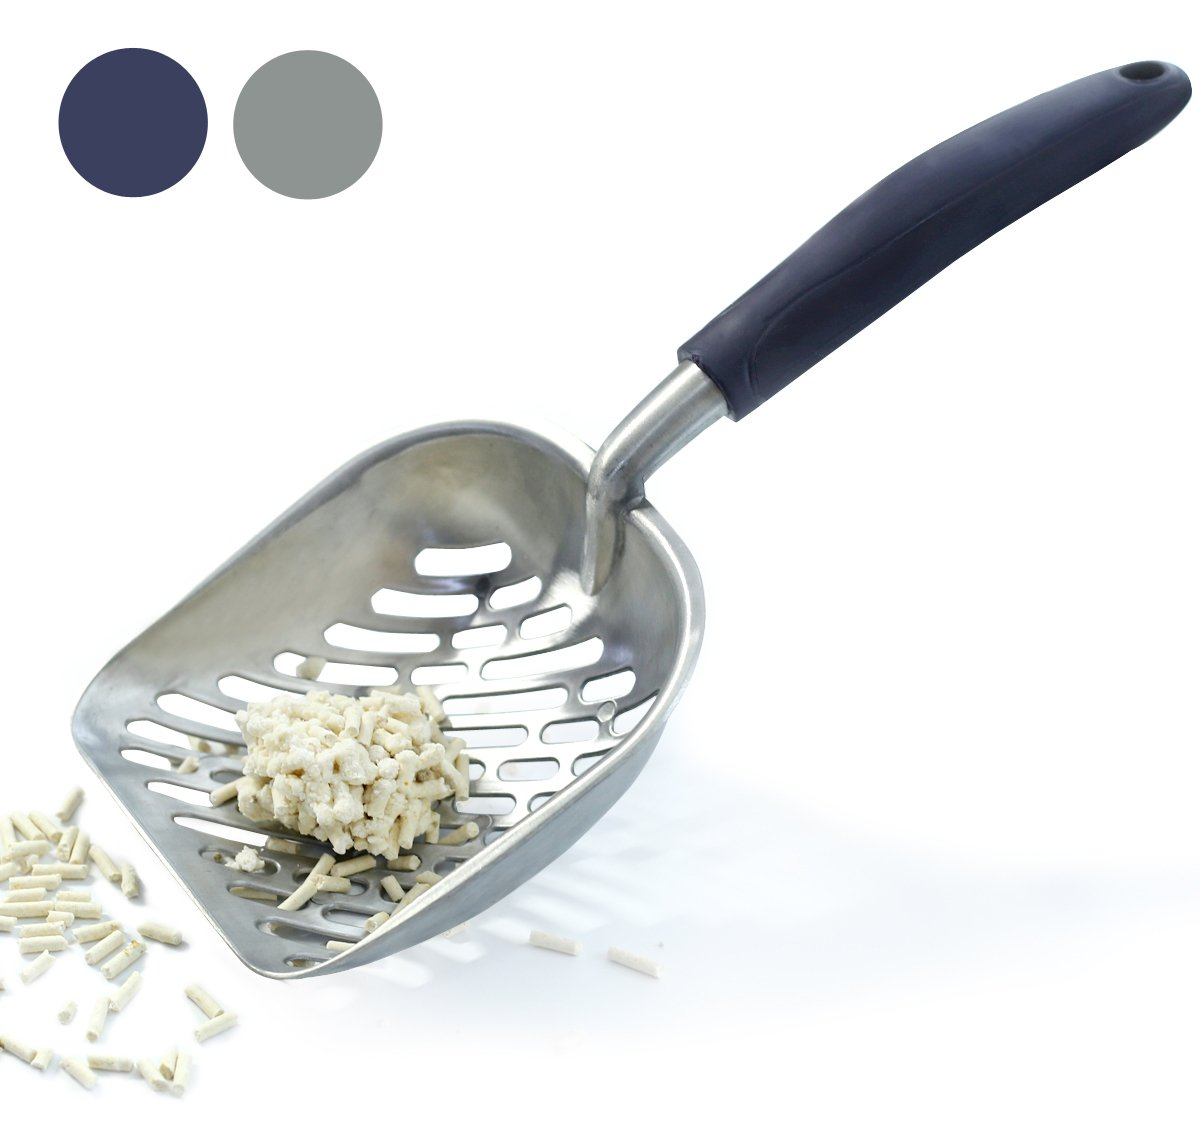 Vivaglory Cat Litter Scoop Durable Metal Litter Scoop for Kitty Sifter with Deep Shovel and Ergonomic Handle Made of Heavy Duty Solid Aluminum Jumbo Size 1PC